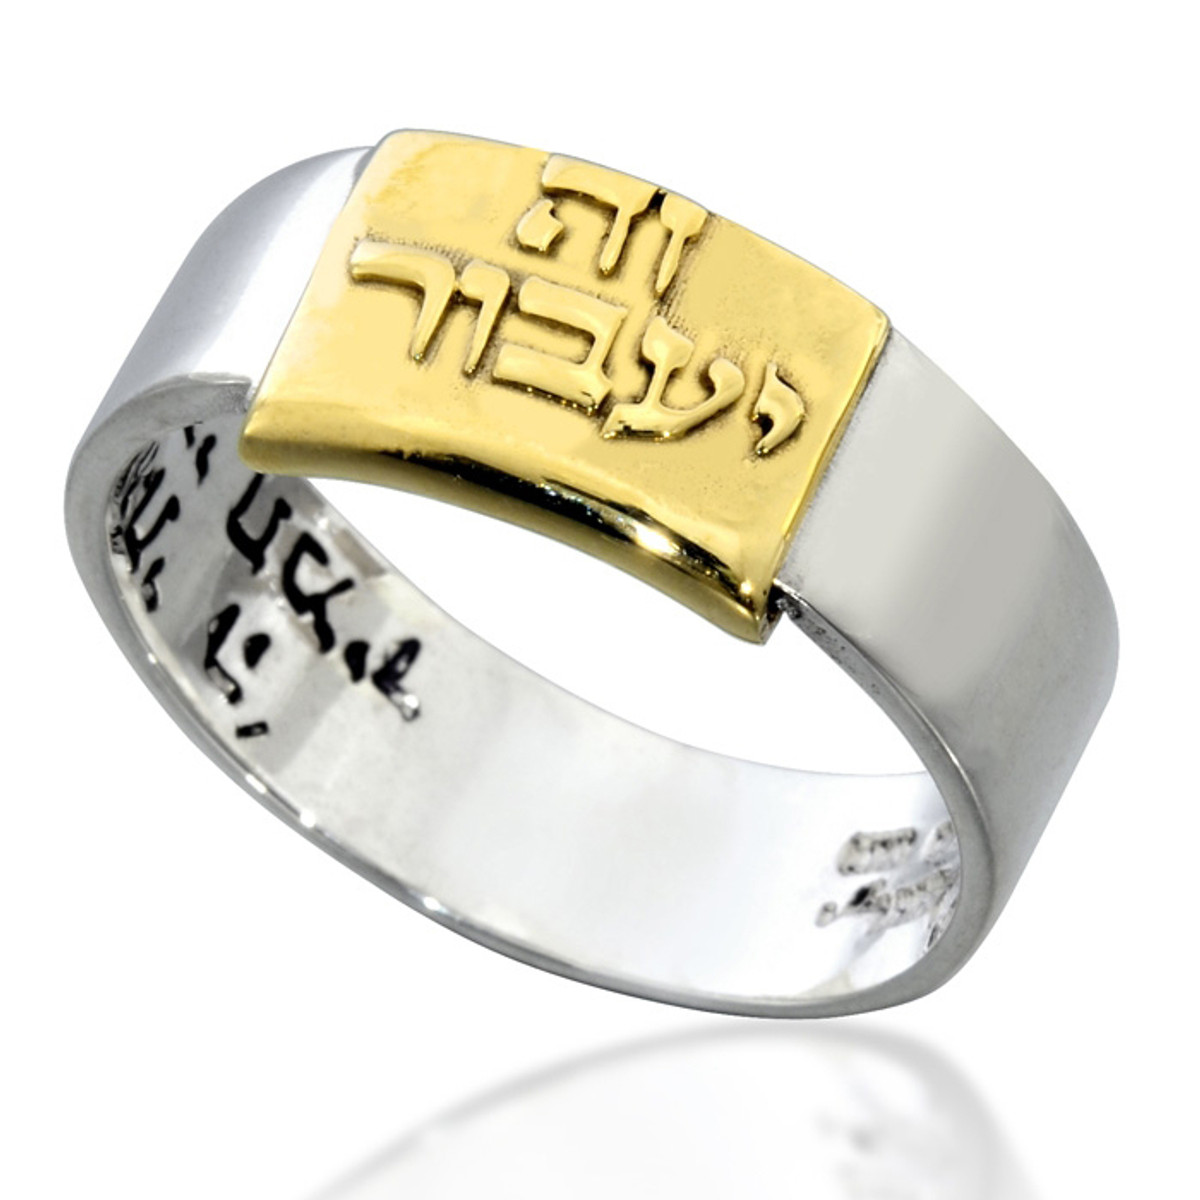 Gold Haari Kabbalah Jewelry HaAri This Too Shall Pass Silver and Gold Kabbalah Ring  Style Ring